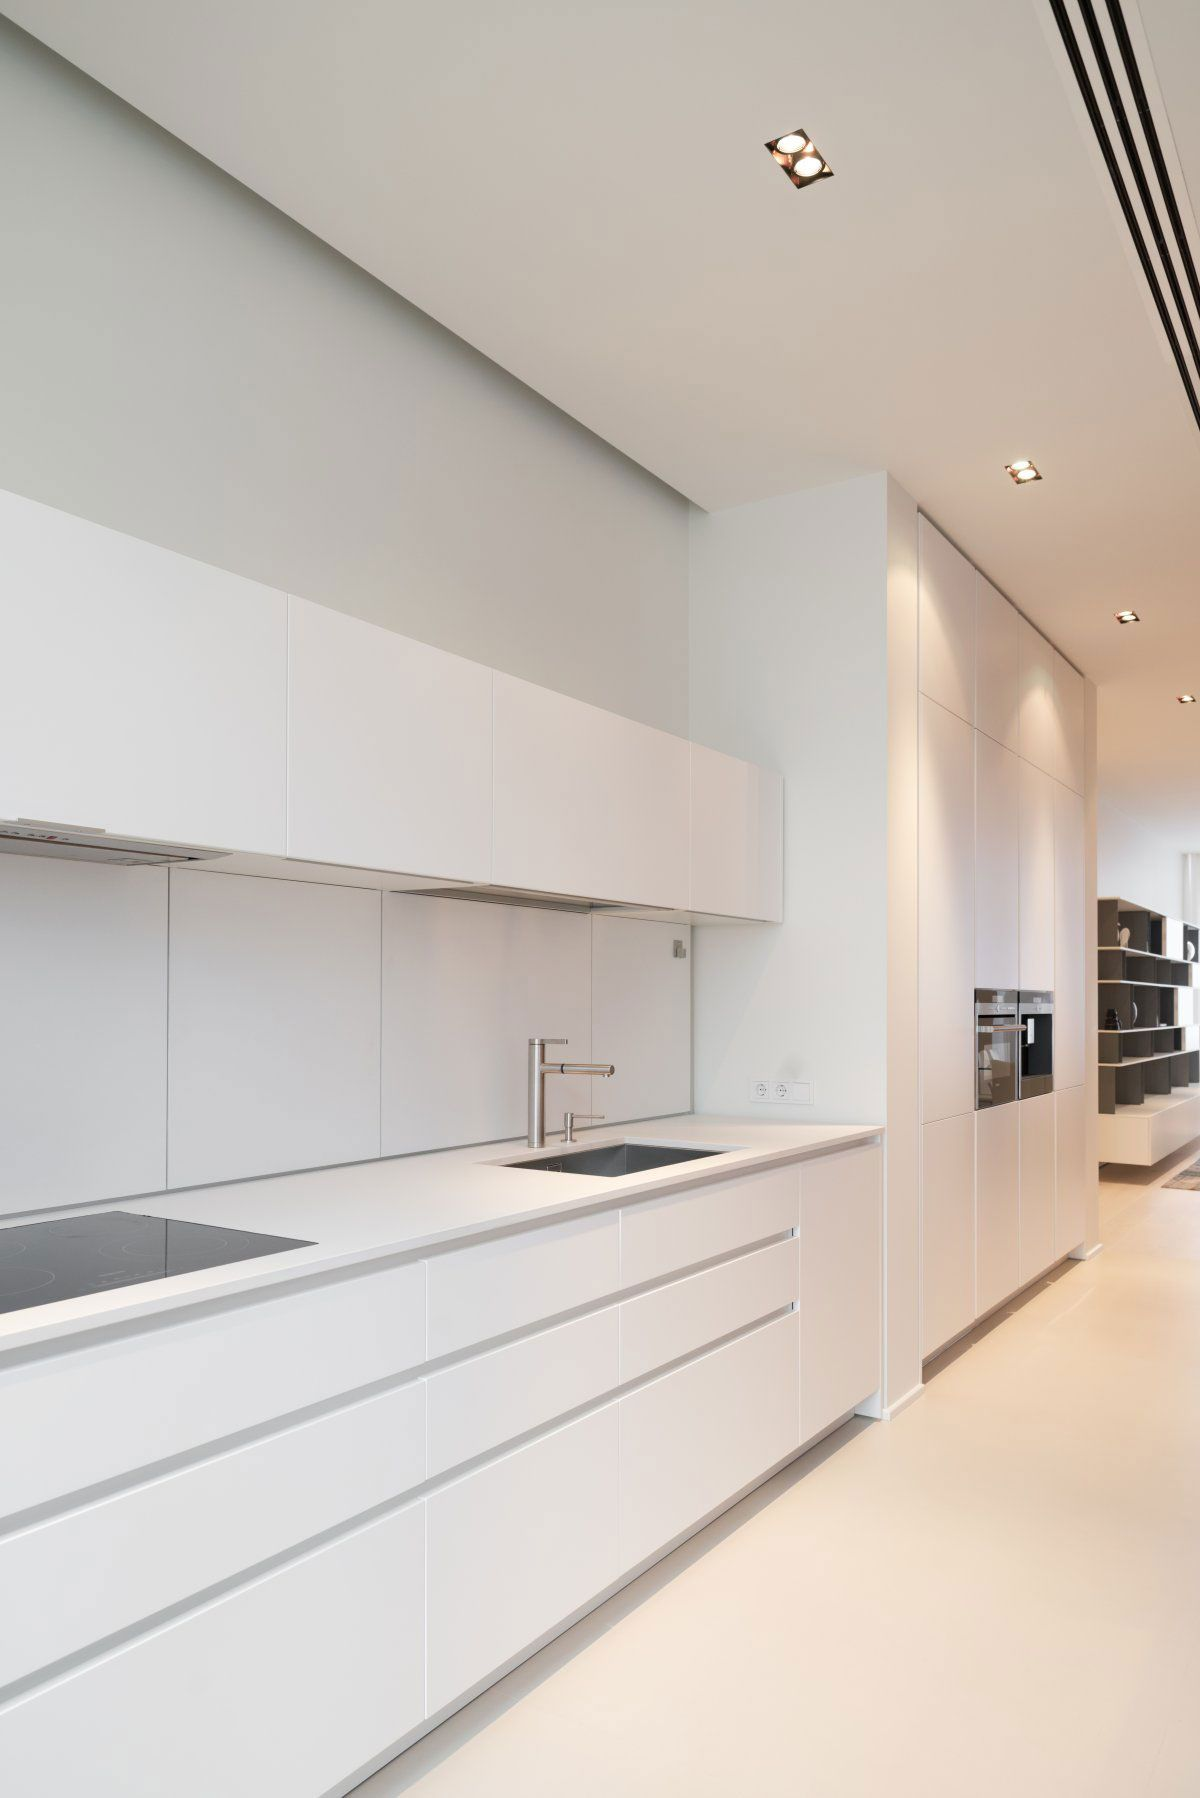 White Kitchen No Handles kitchen minimalist - integrated fridge, no handles, rear sliding